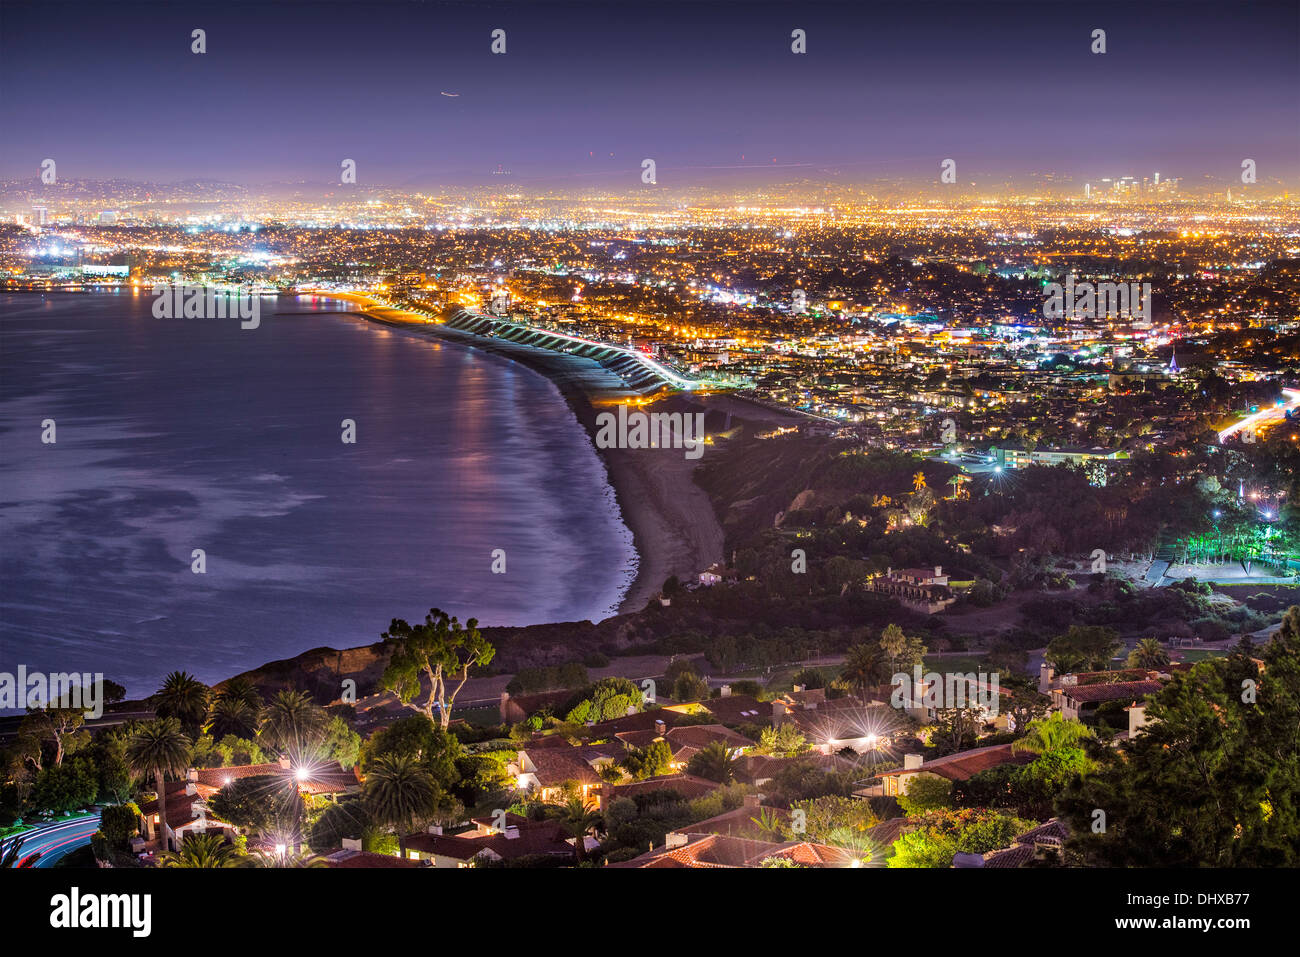 The Pacific Coast of Los Angeles, California as viewed from Rancho Palos Verdes. - Stock Image